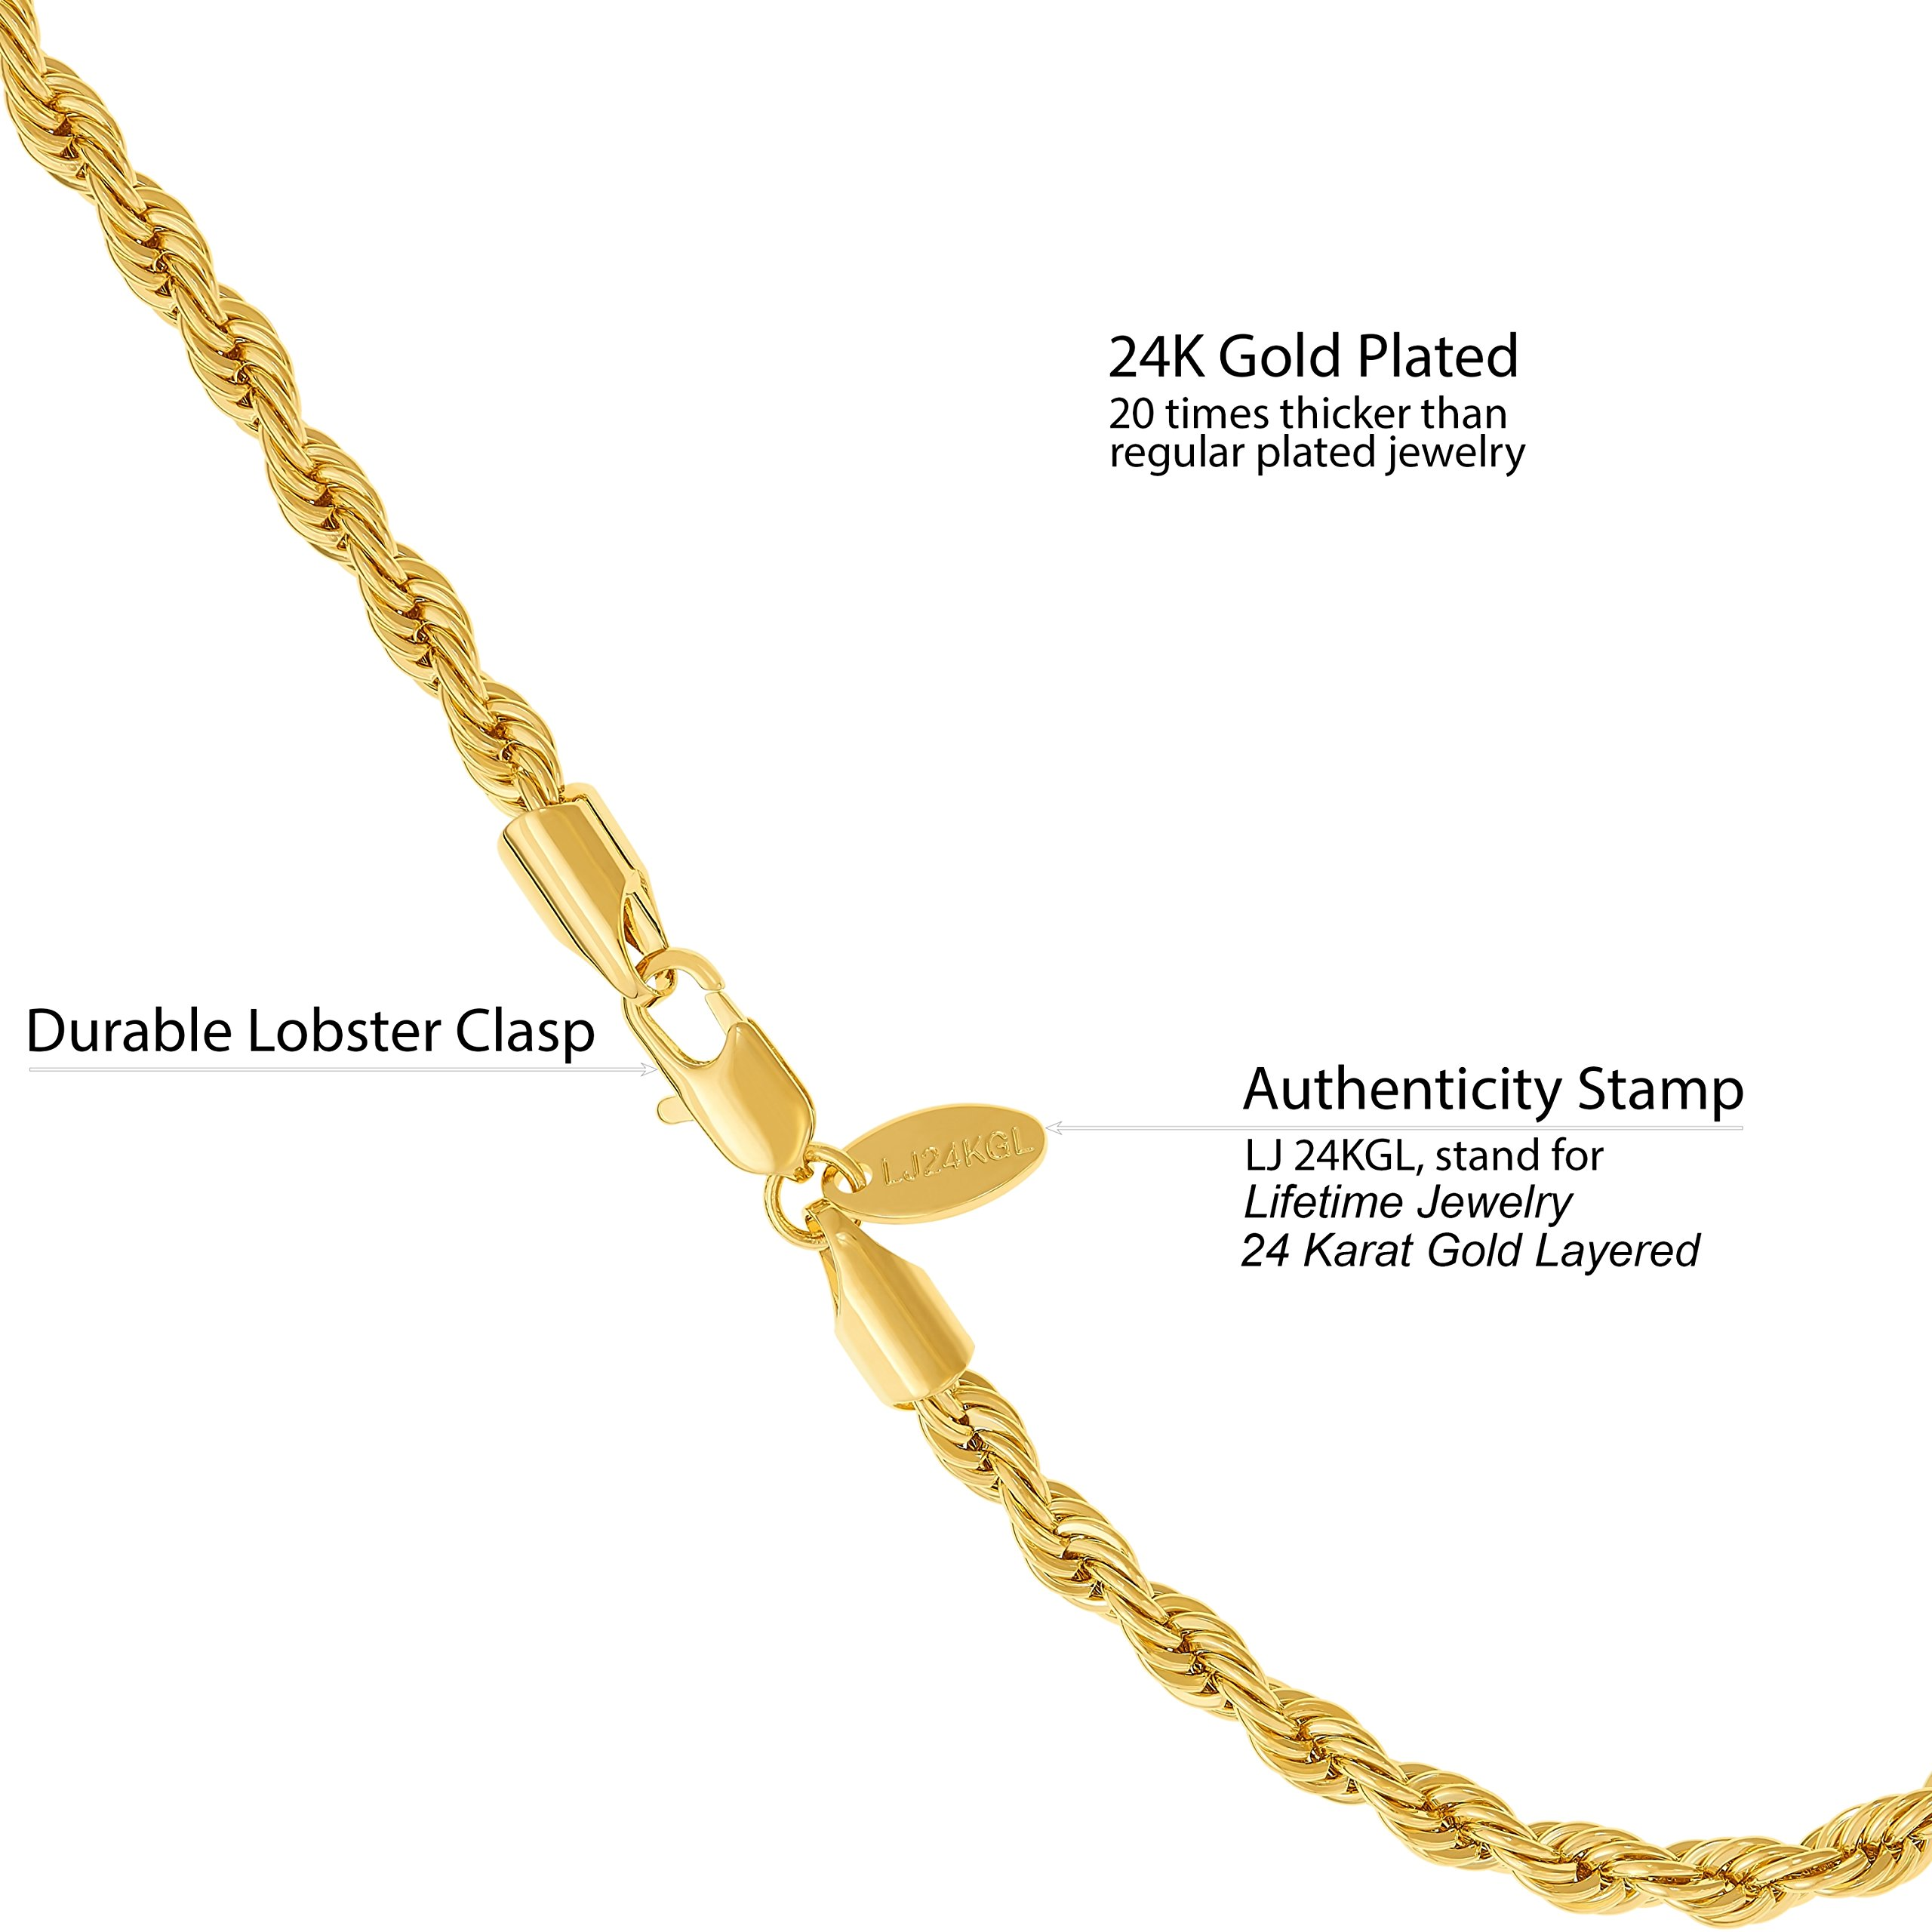 Lifetime Jewelry Rope Bracelet 5MM, Round, 24K Gold with Inlaid Bronze, Premium Fashion Jewelry, Guaranteed for Life, 8 Inches by Lifetime Jewelry (Image #4)